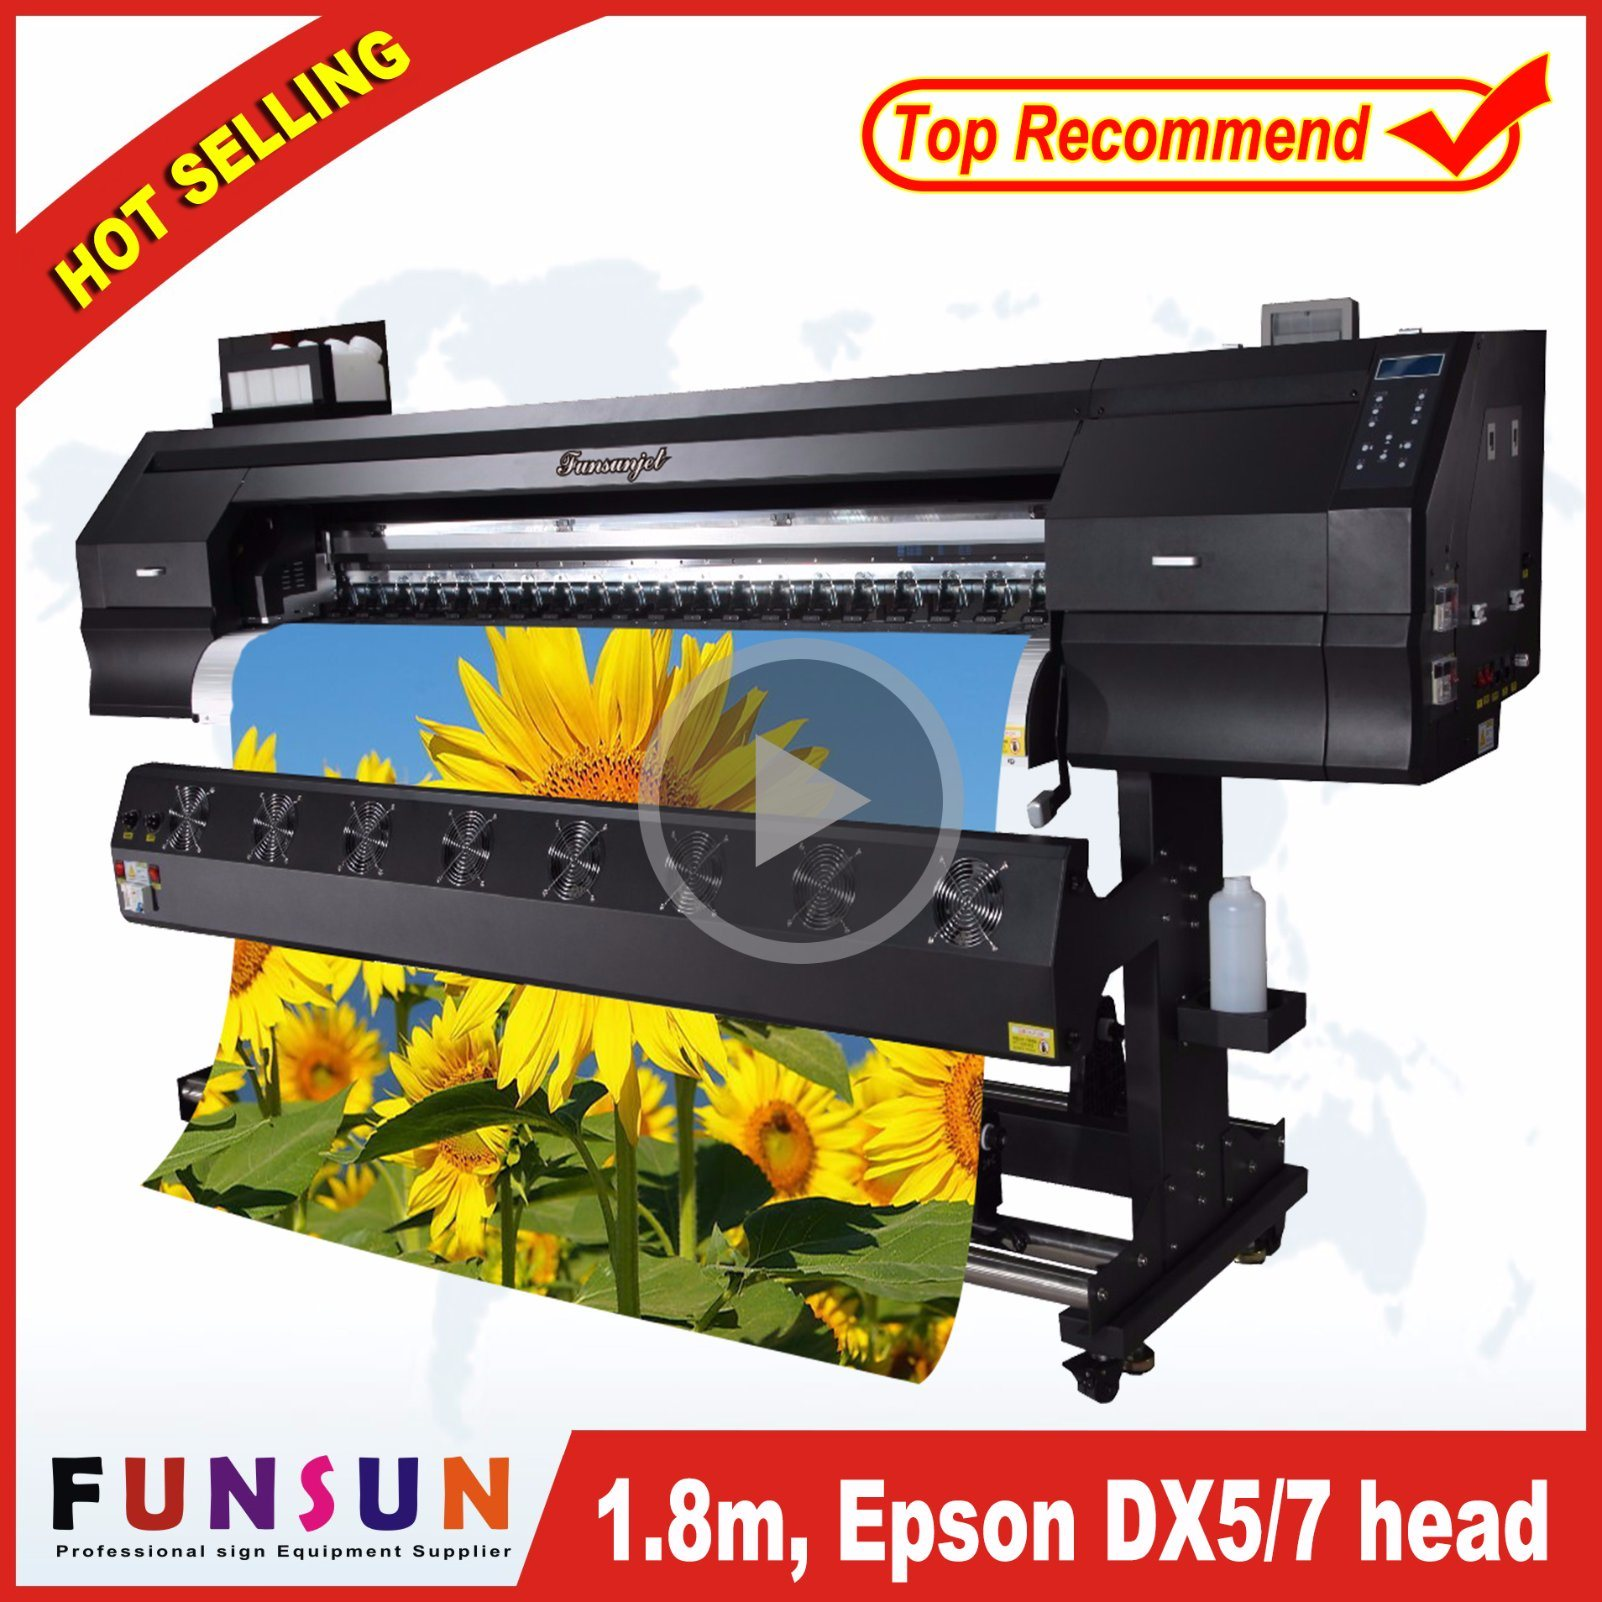 Big discount funsunjet fs 1802g 1 8m 6ft outdoor wide format printer with two dx5 heads 1440dpi for vinyl sticker printing